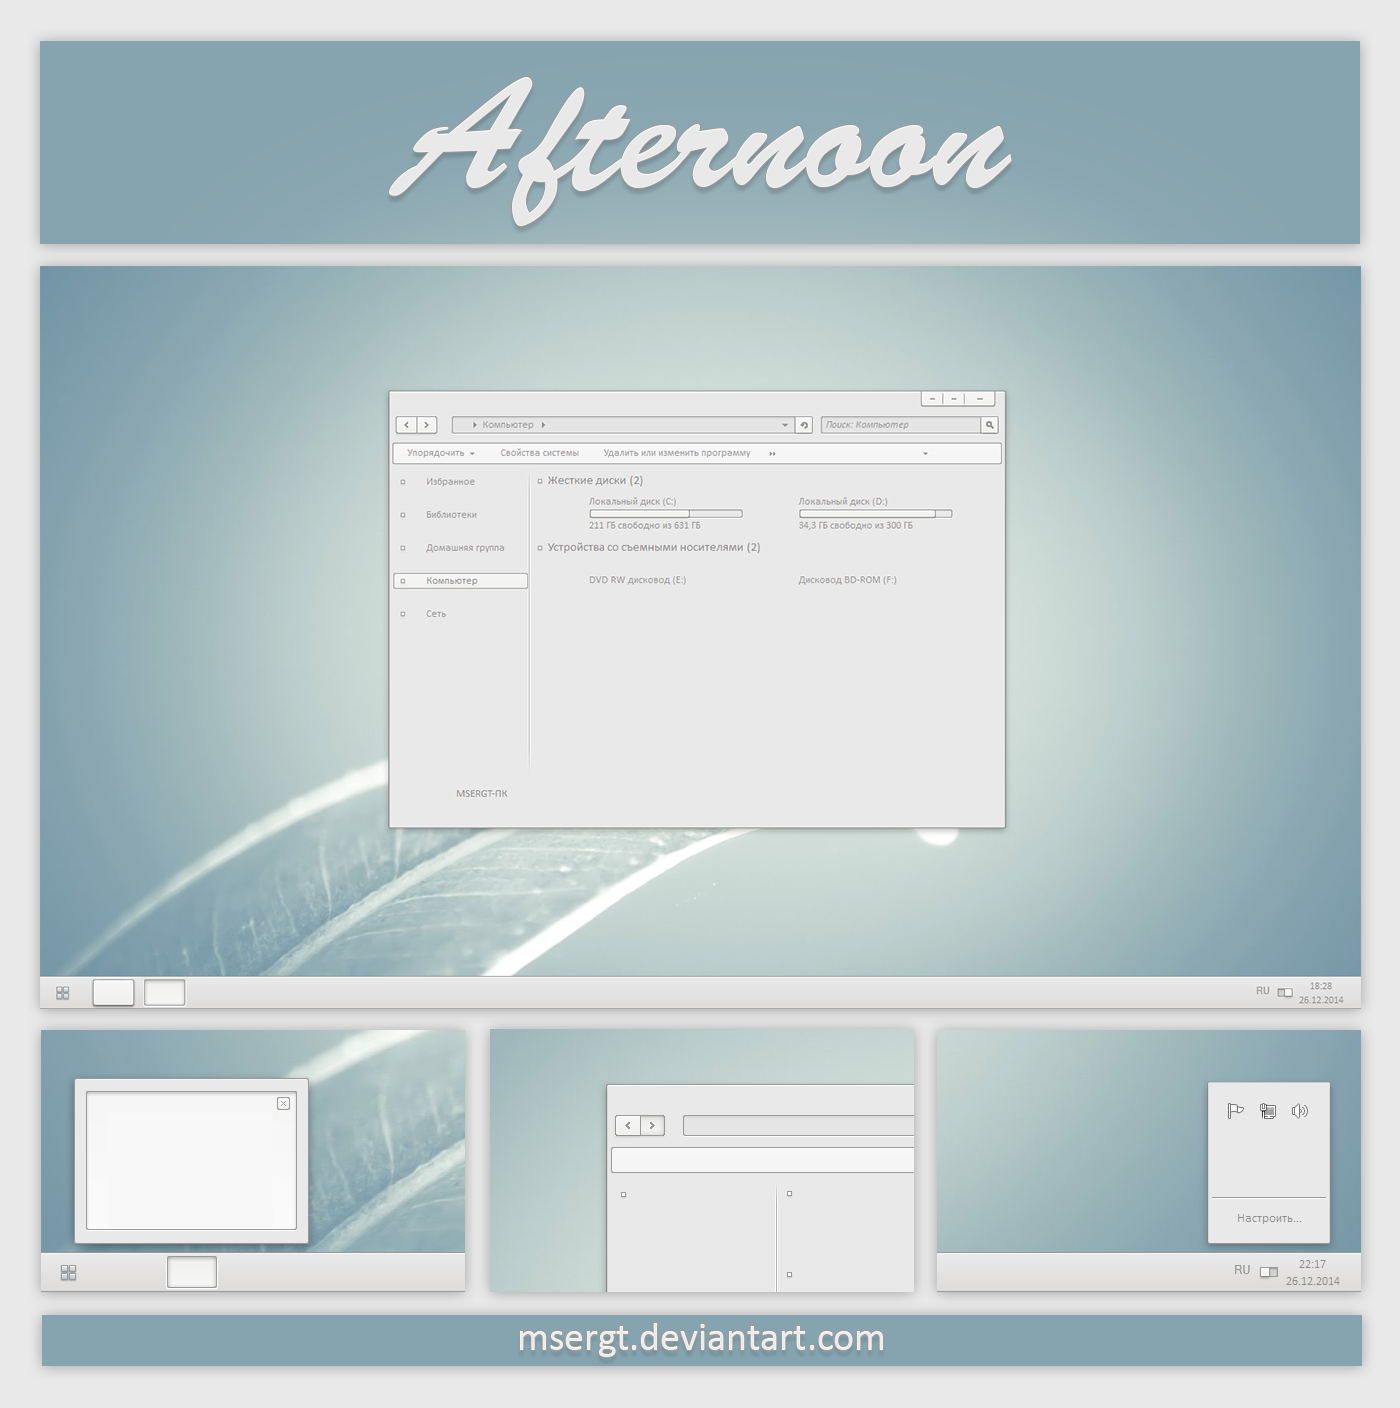 Afternoon by msergt